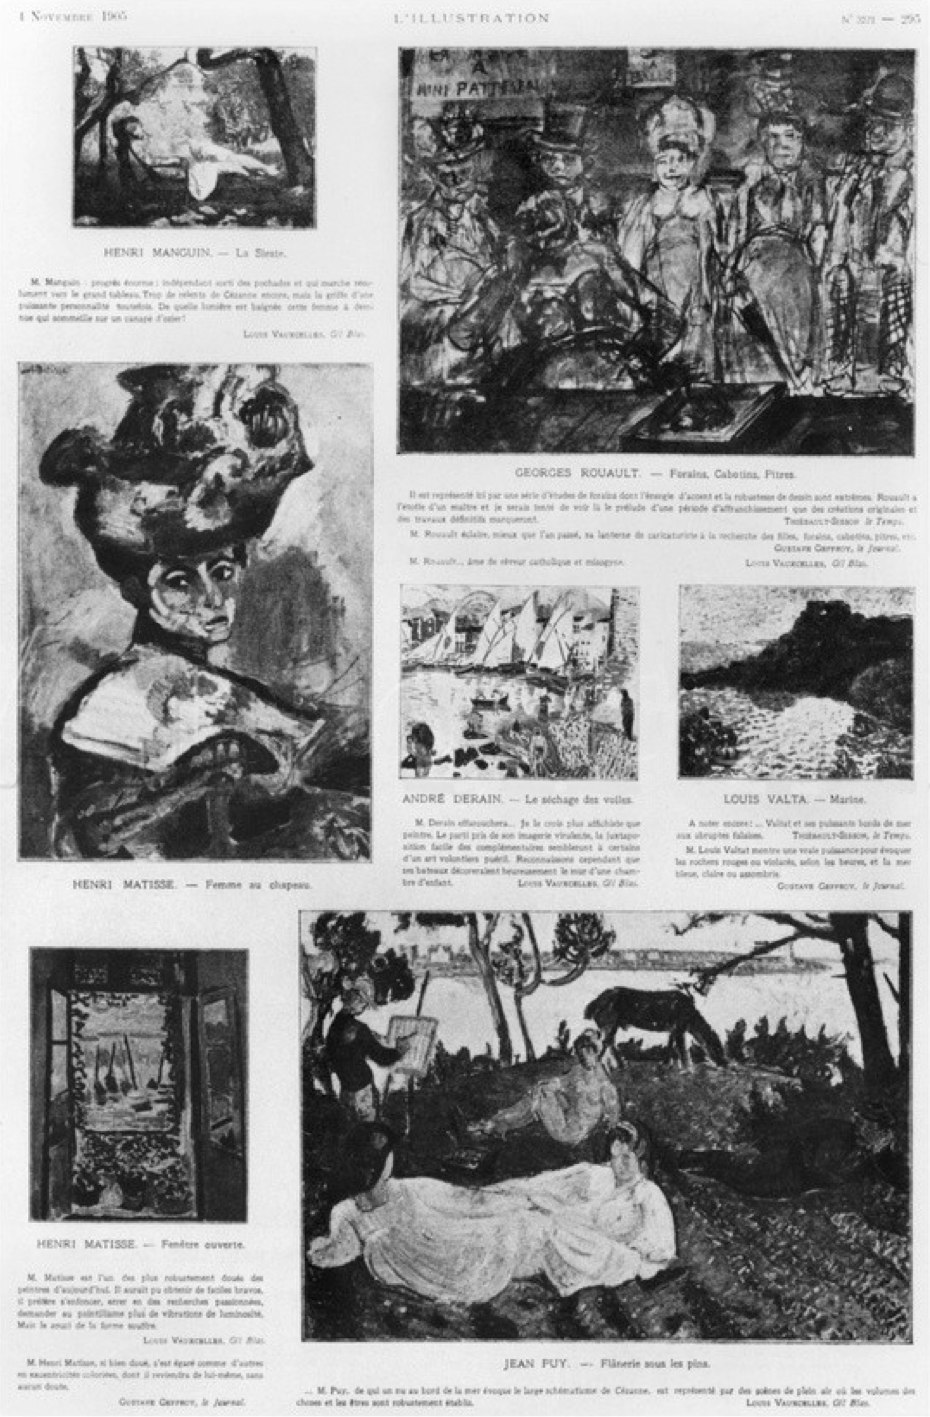 Les Fauves, Exhibition at the Salon D'Automne, from L'Illustration, 4 November 1905